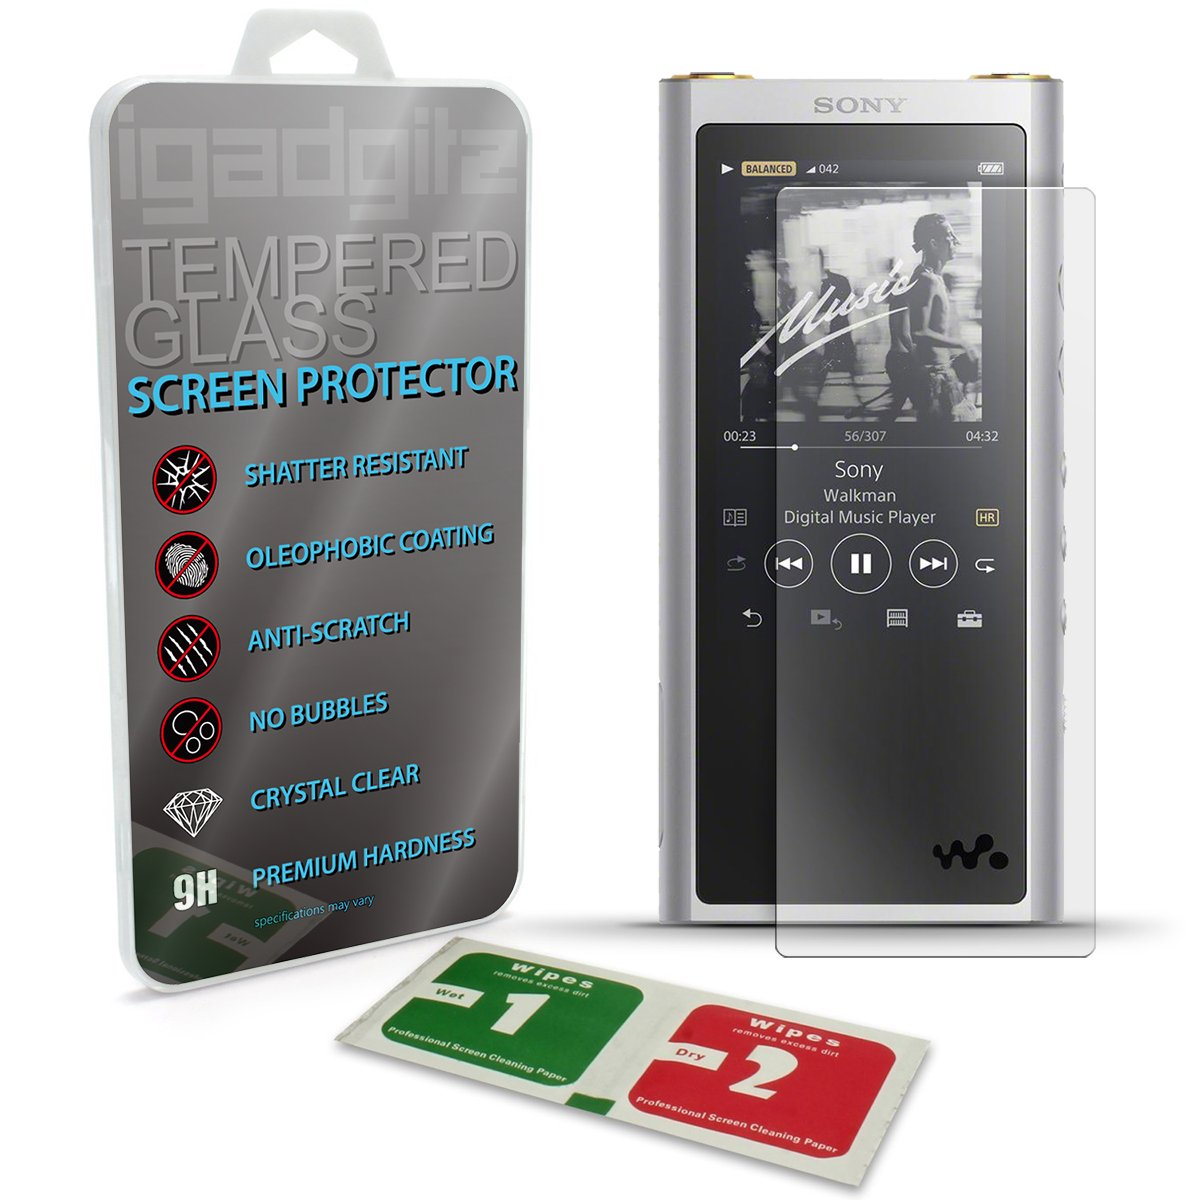 iGadgitz U6877 Tempered Glass Screen Protector for Sony Walkman NW-ZX300 High-Resolution Audio MP3 Player Shatterproof 9H Hardness Anti Scratch